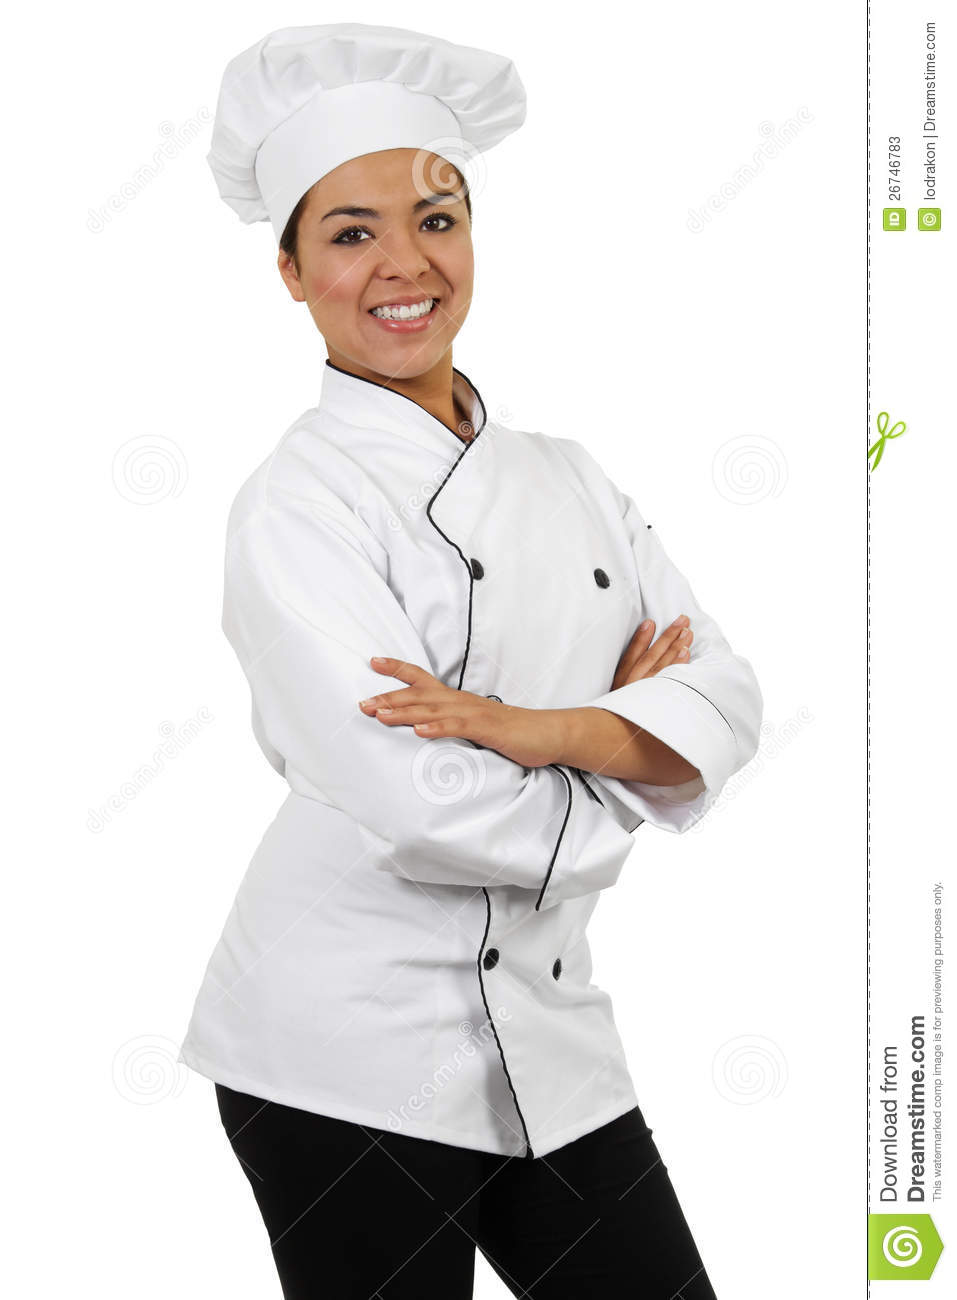 Stock image of female chef isolated on white background.